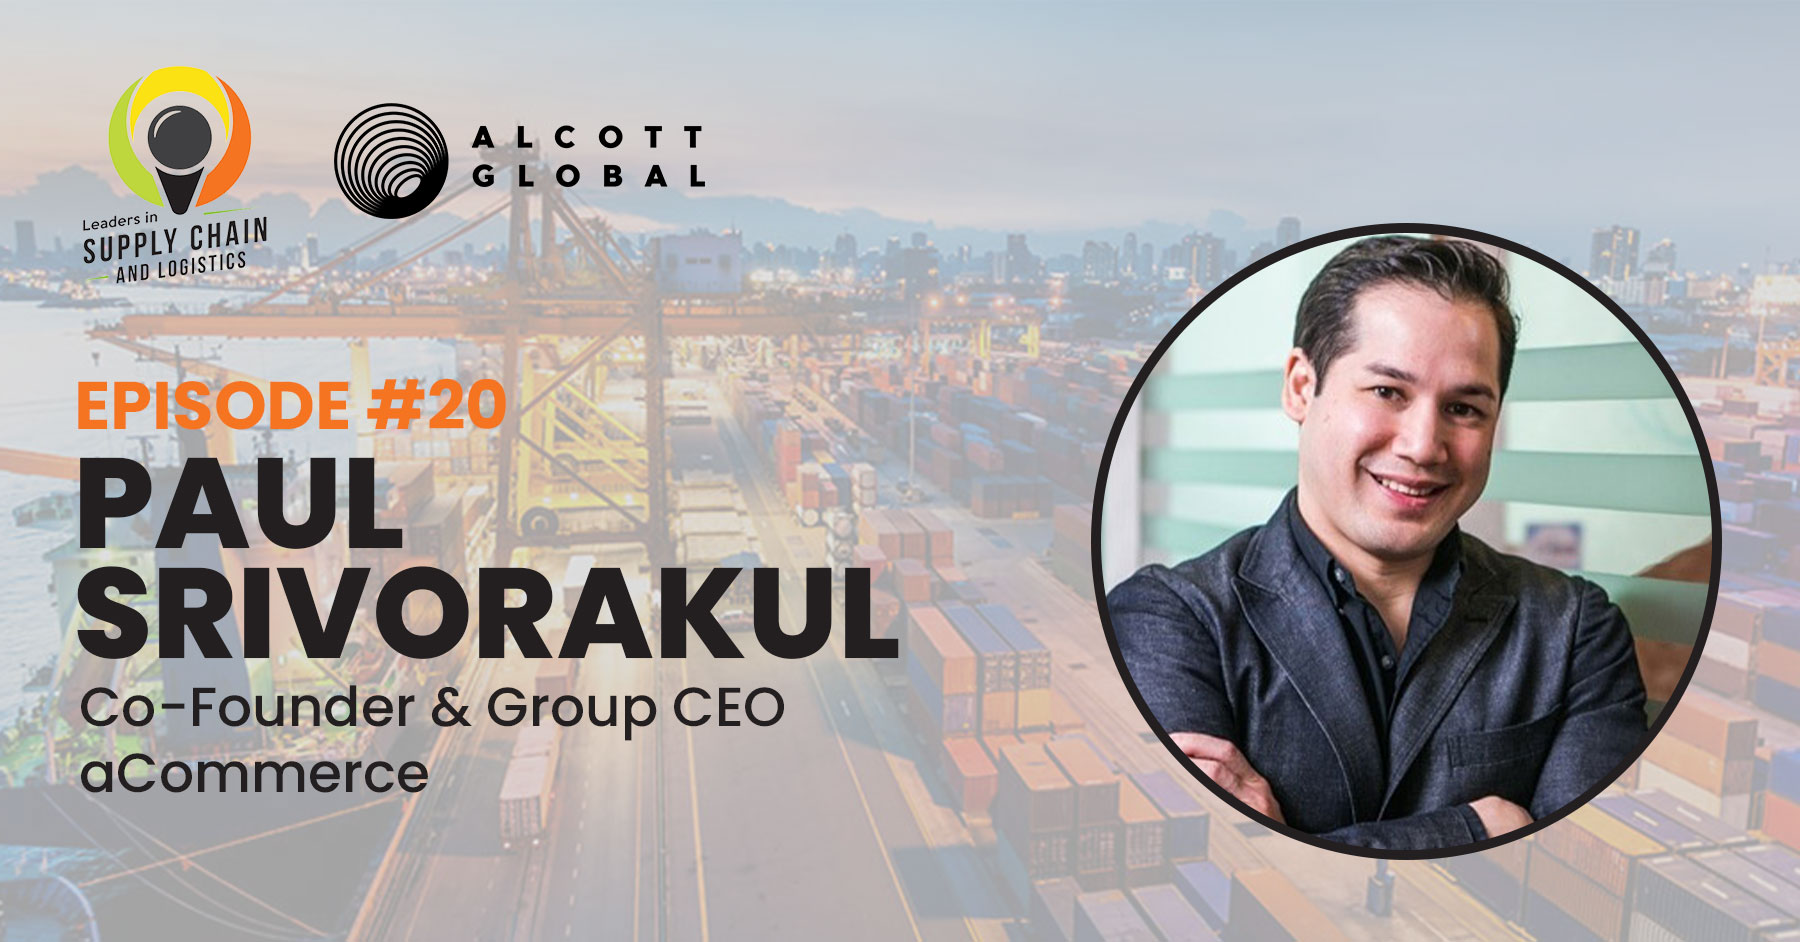 #20: Paul Srivorakul Co-Founder & Group CEO aCommerce Featured Image